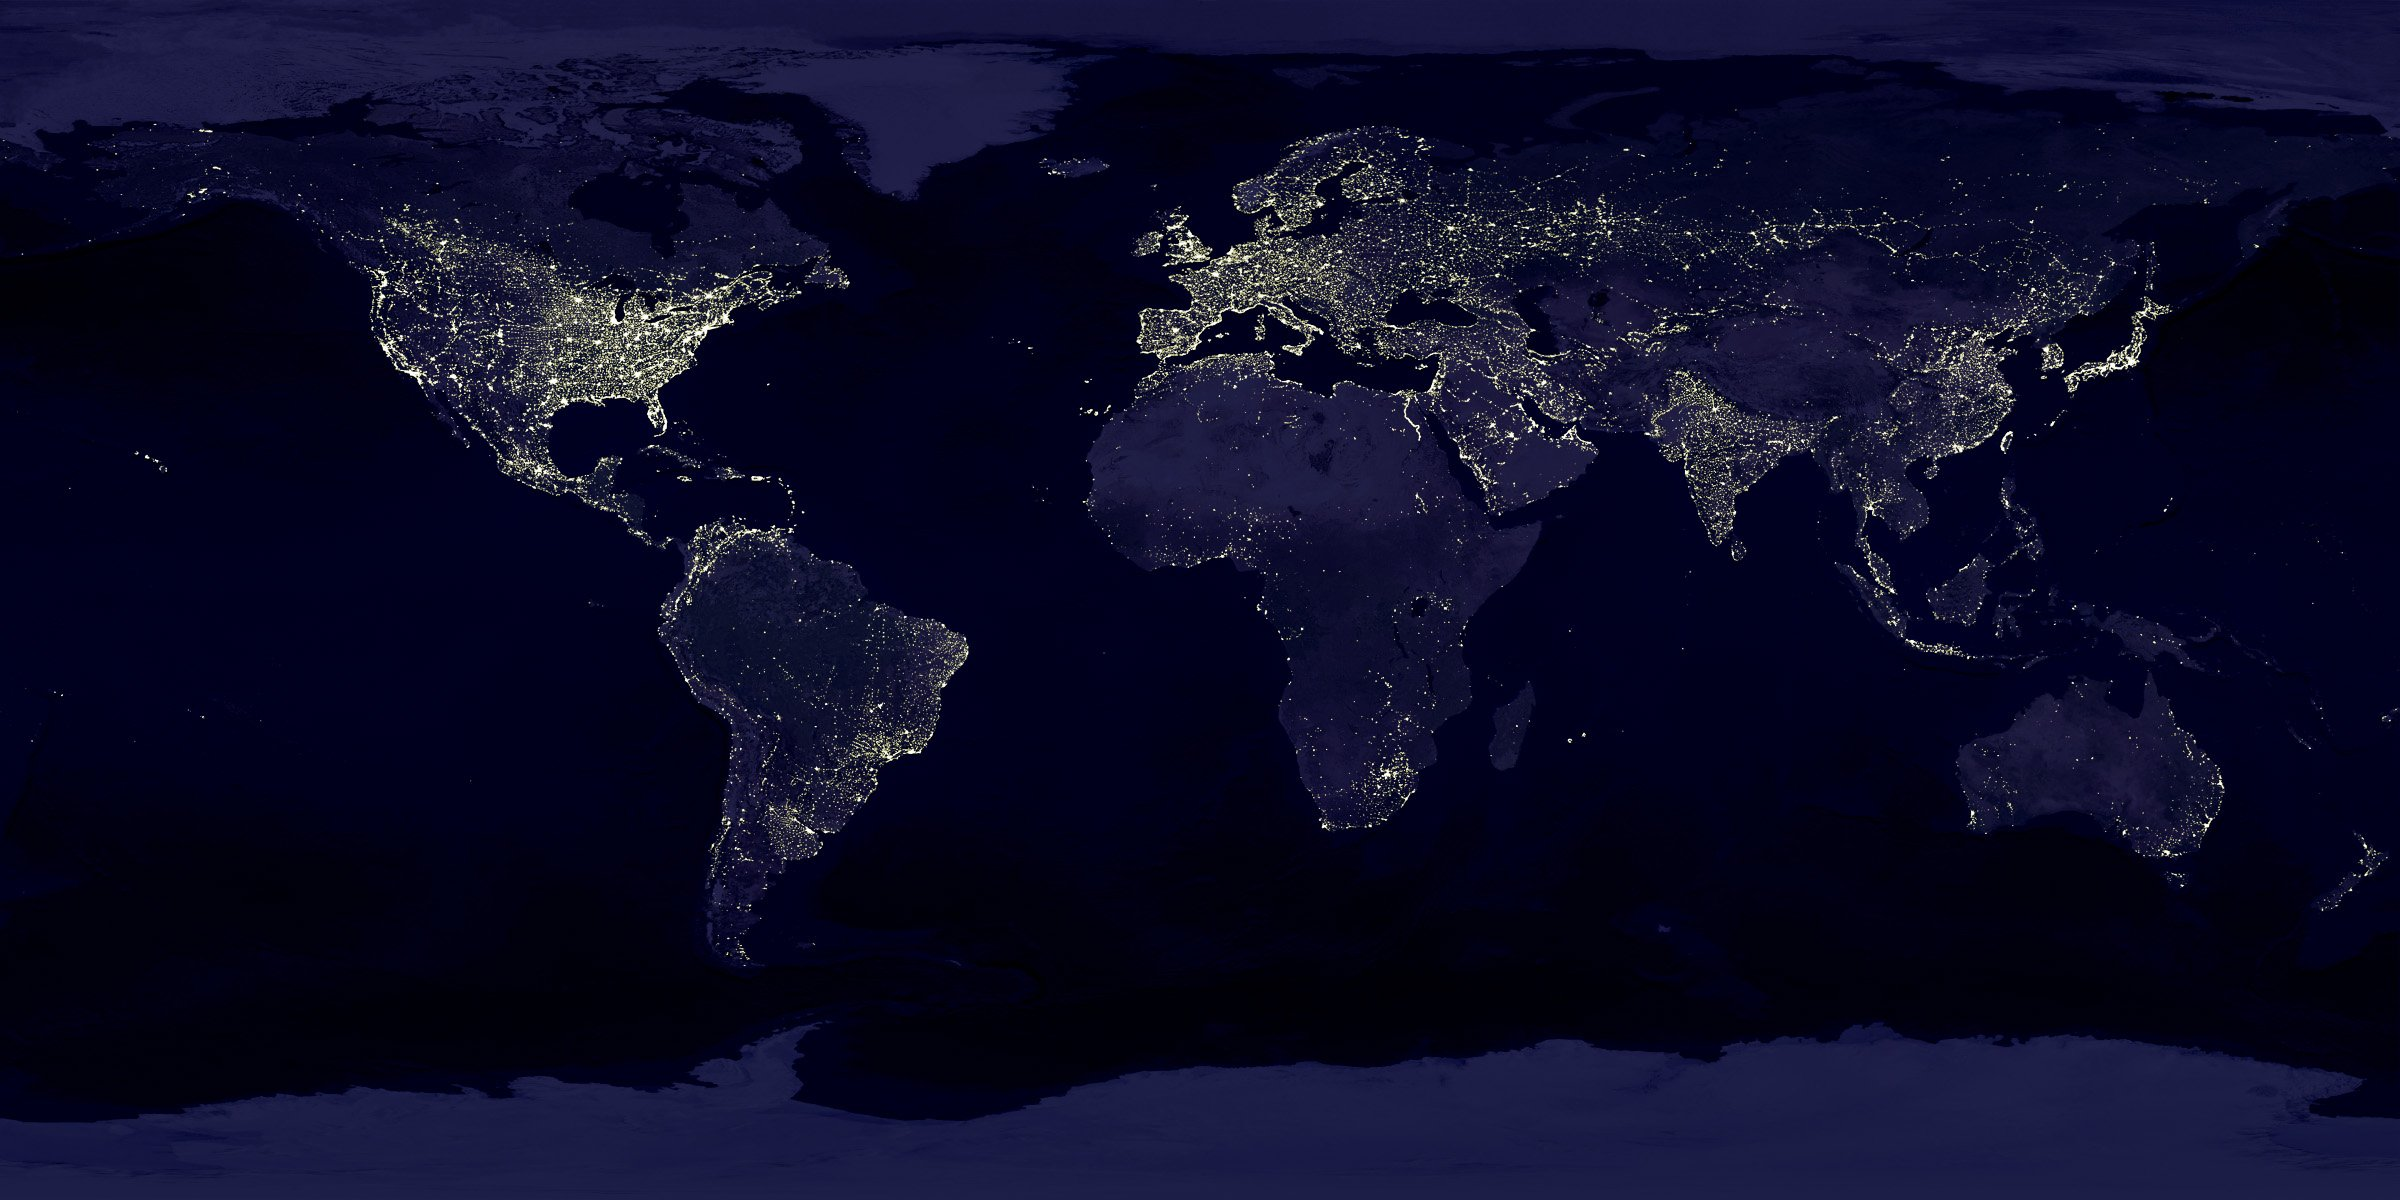 Photograph of lights on planet earth, take from space